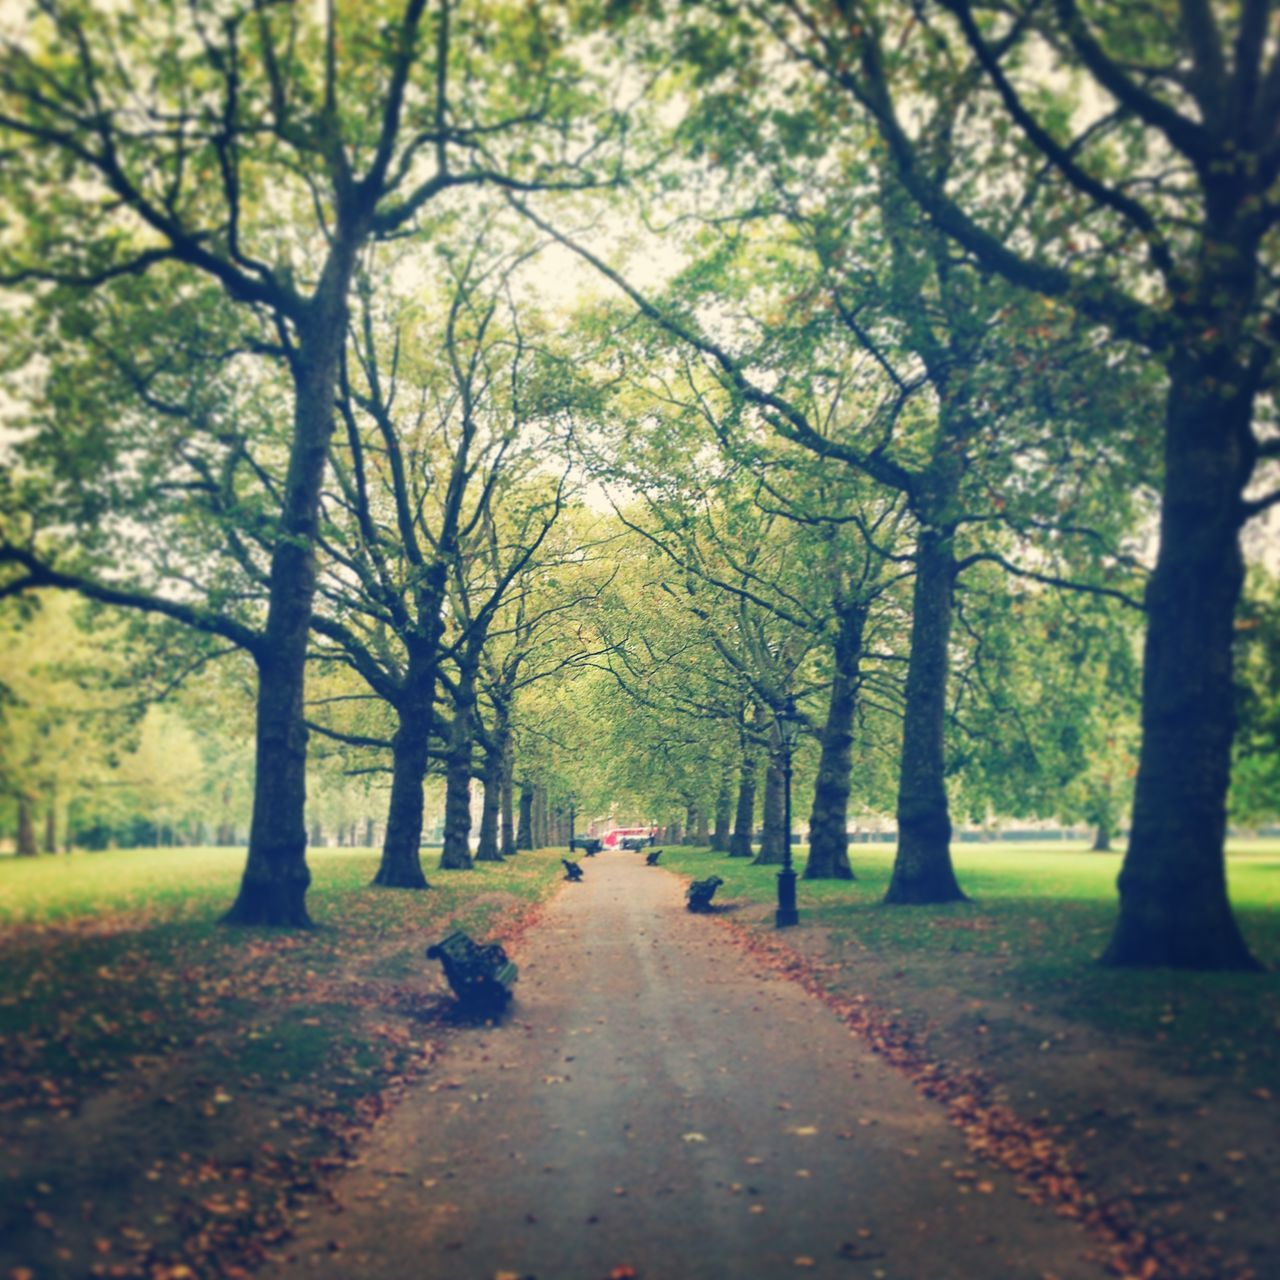 Greenpark Trees Path Relaxing Green Park London Royalpark